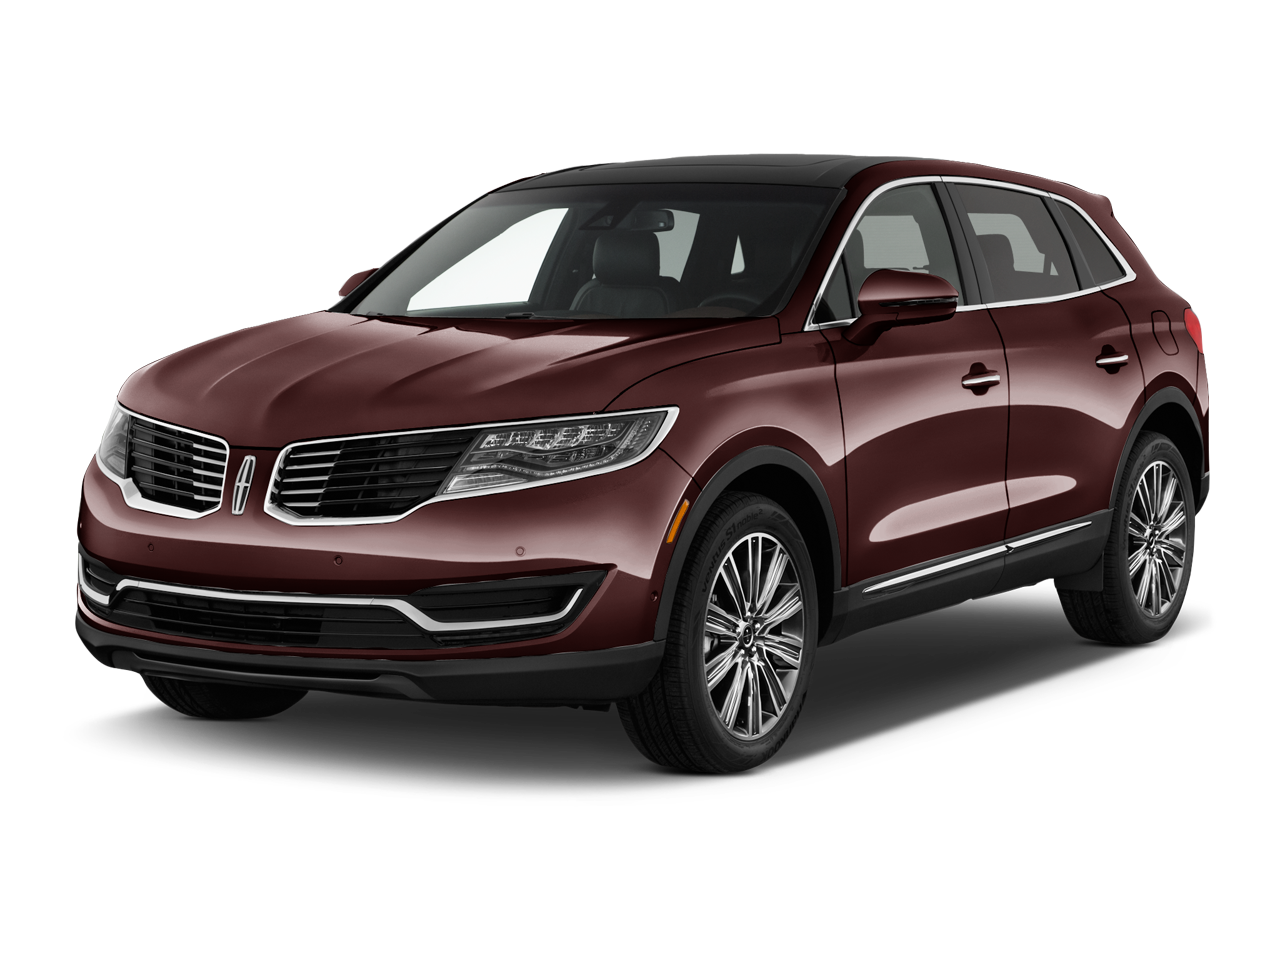 new lincoln mkx for sale randy wise auto. Black Bedroom Furniture Sets. Home Design Ideas